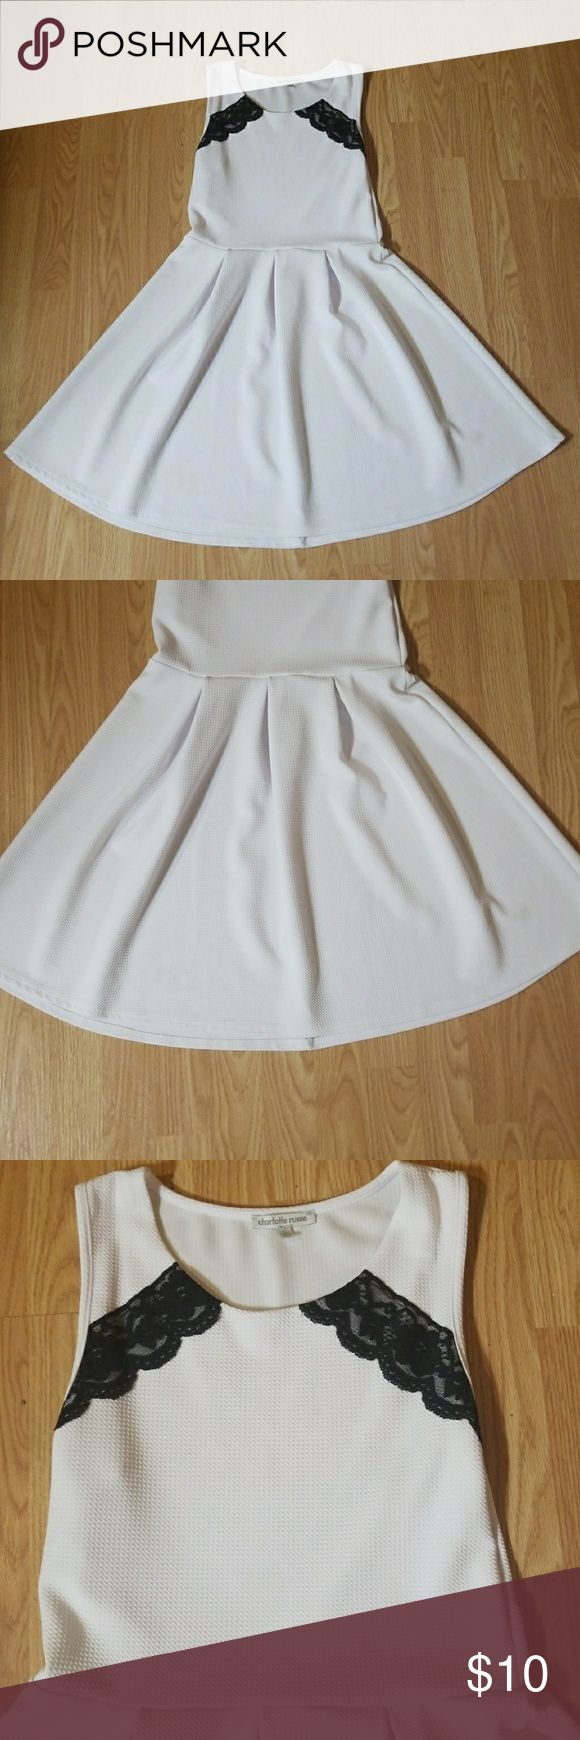 White short pleated/skater dress White dress with pleated skirt and black lace accents on the collar bone area. Super comfortable and airy to wear in the summer time. Charlotte Russe Dresses Mini